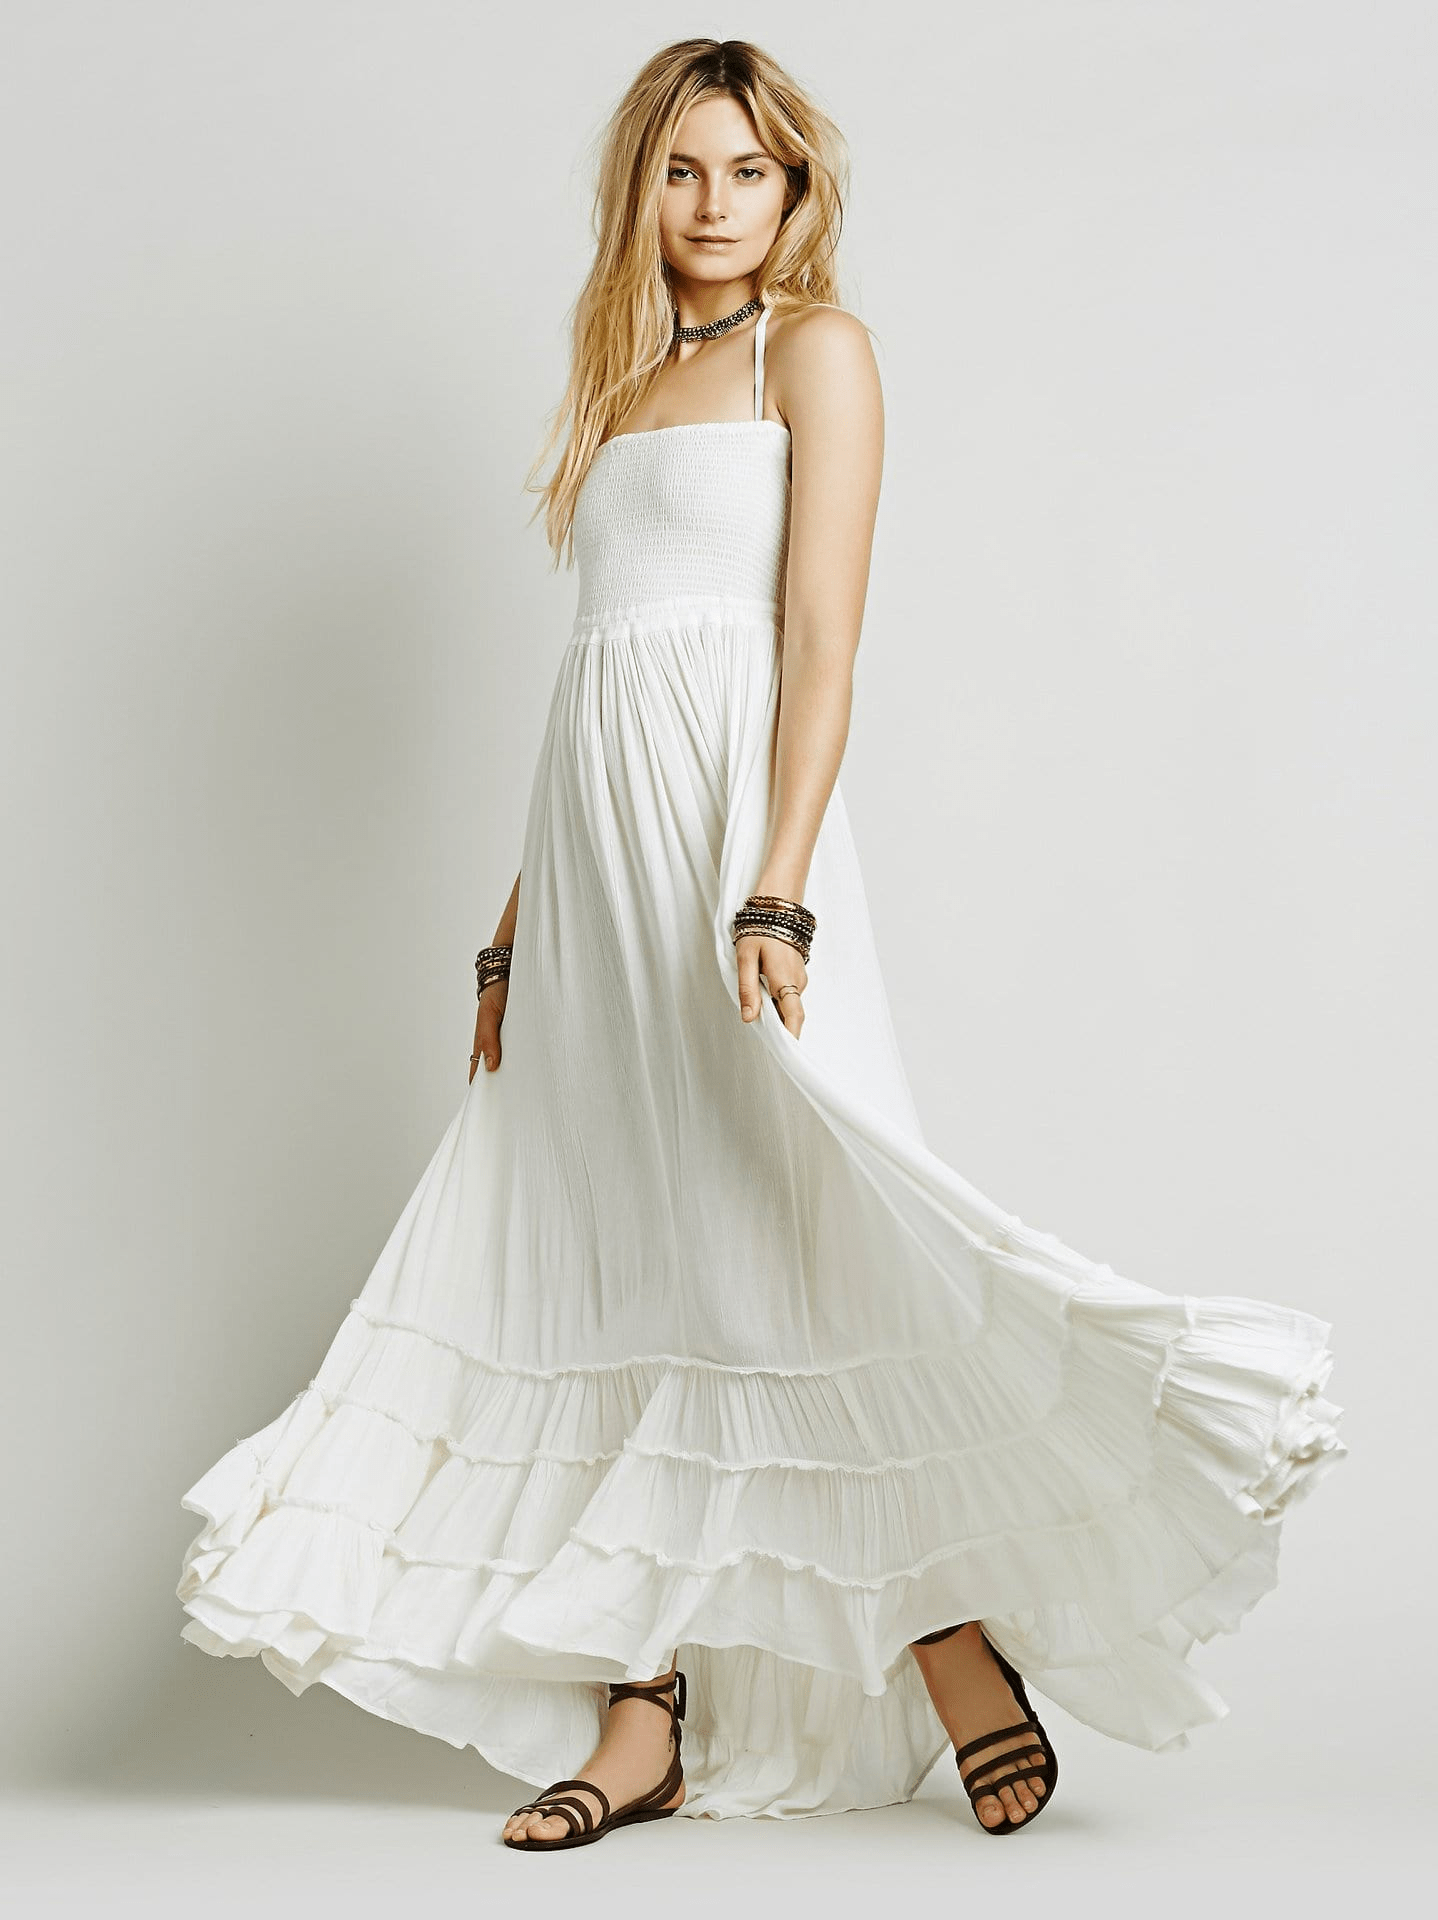 Lady Earth Maxi Dress dress WickedAF WHITE S